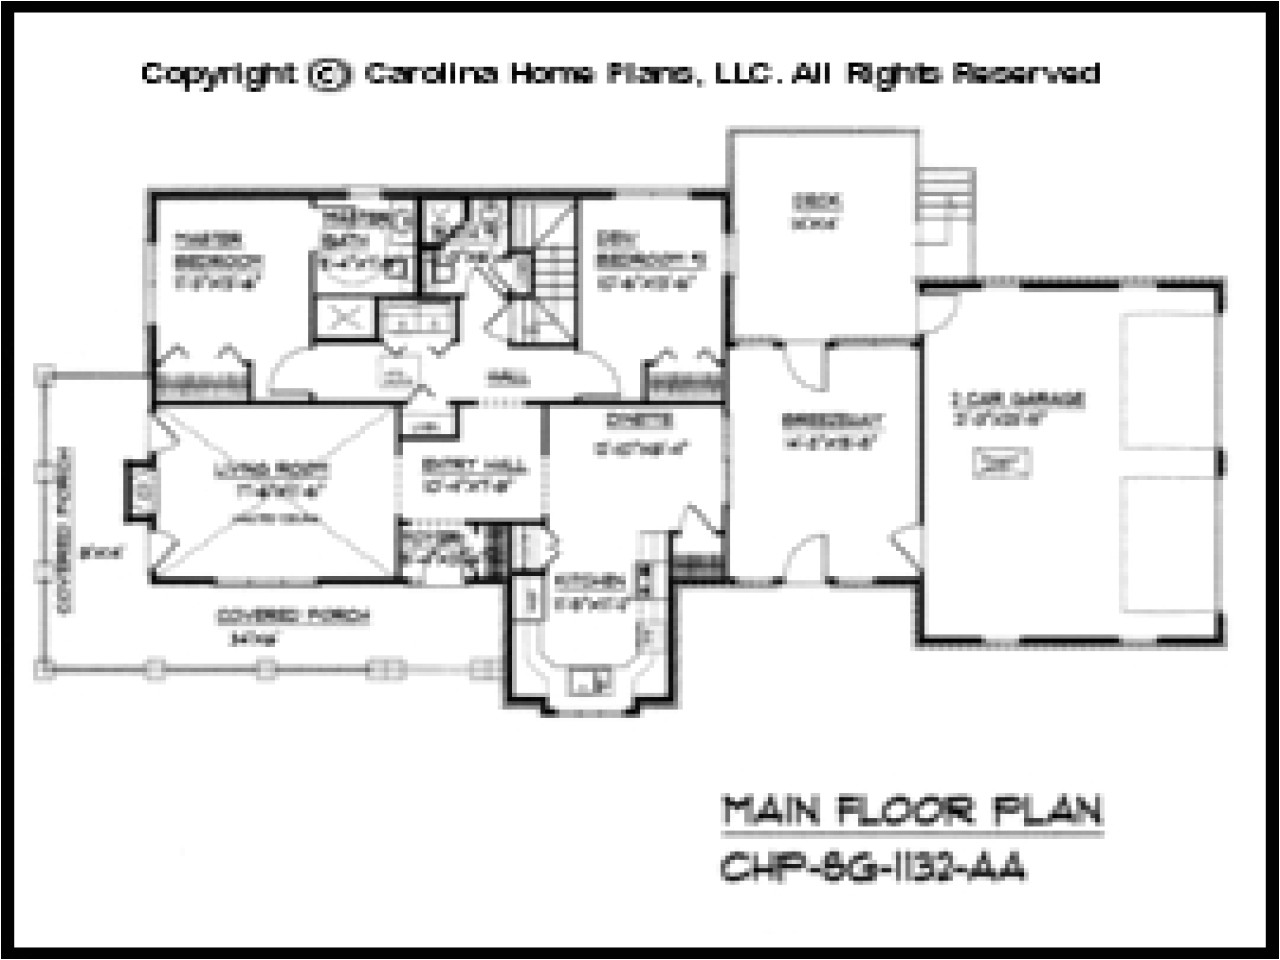 2e5635b3c5bcda19 simple small house floor plans small house plans under 1200 sq ft